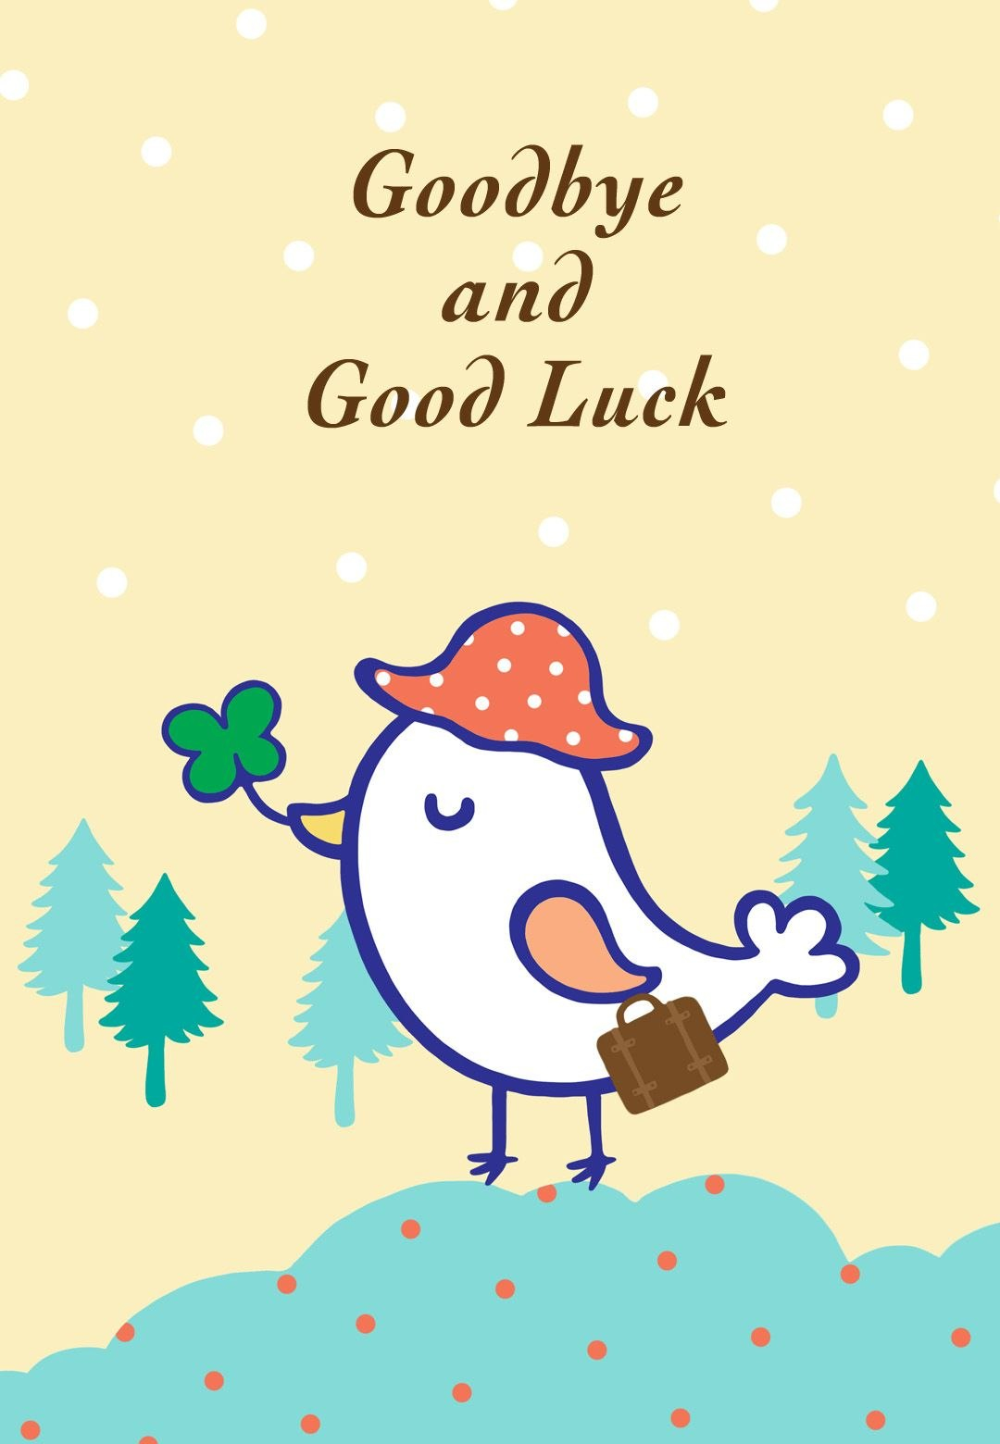 Free Printable Goodbye And Good Luck Greeting Card Littlestar With Farewell Card Template Word 10 Profes Goodbye And Good Luck Goodbye Cards Good Luck Cards